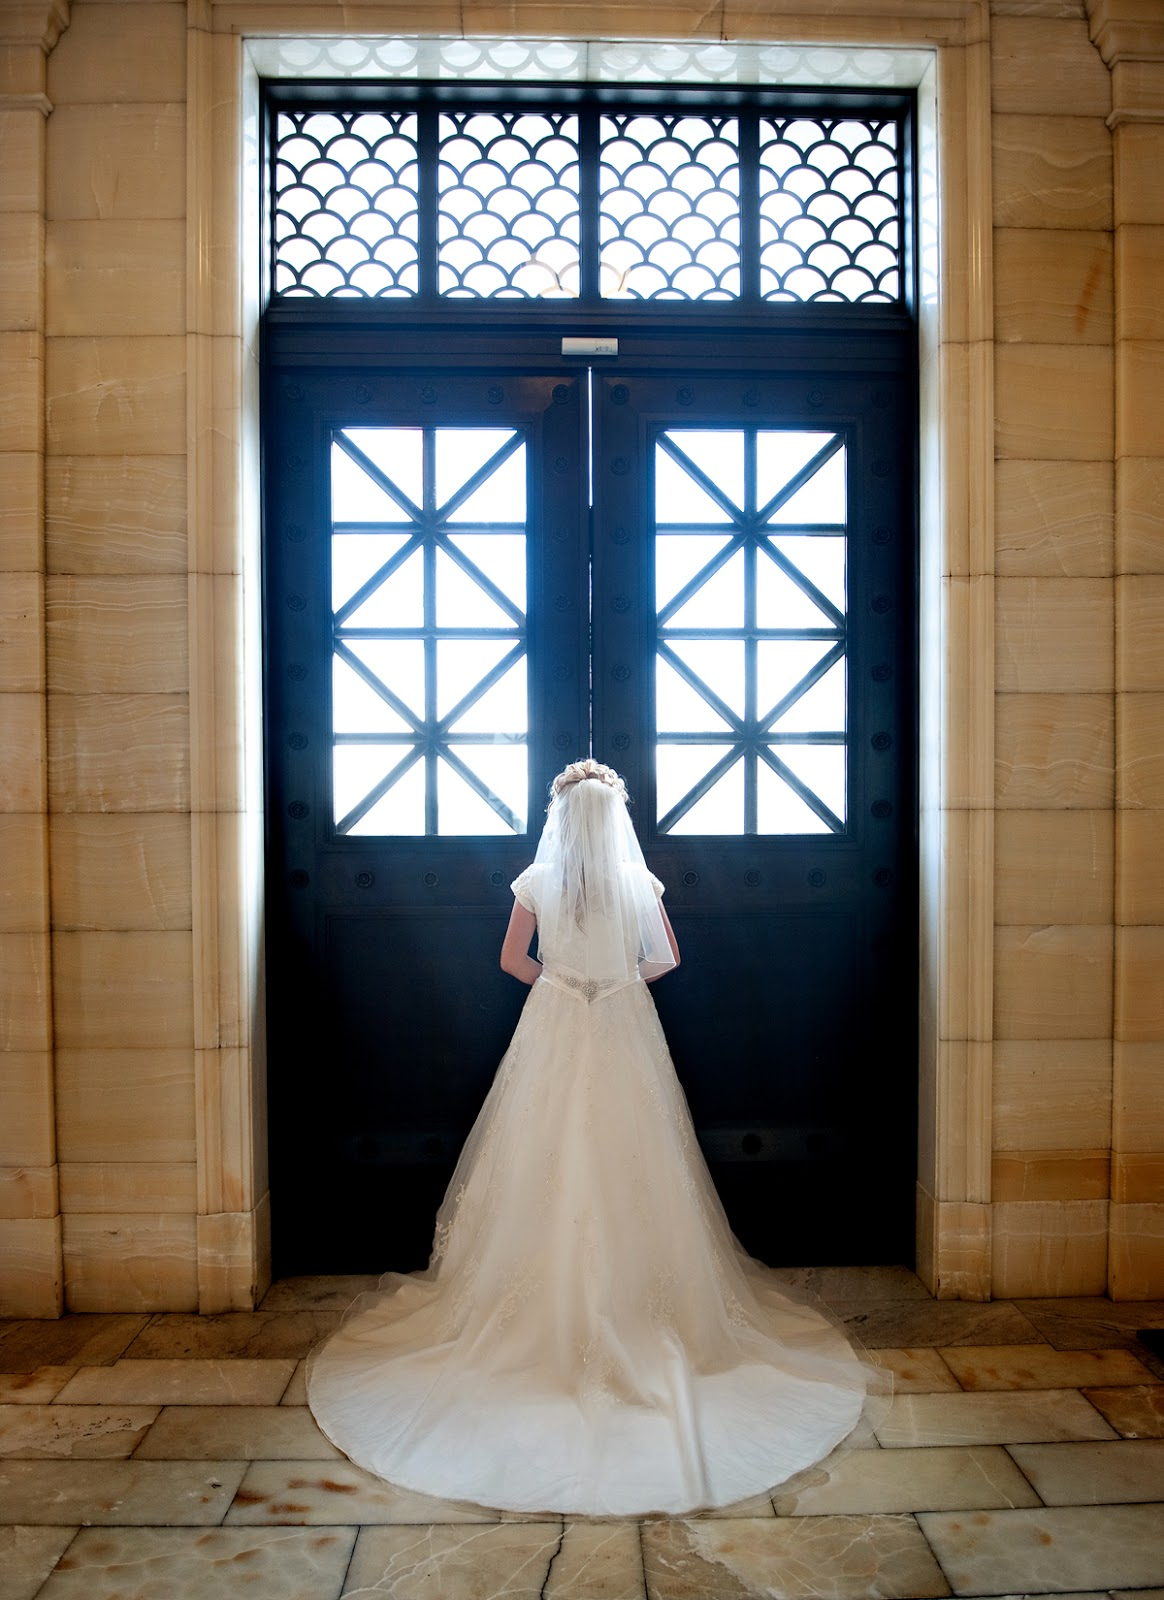 Mashed Potatoes And Crafts Tips For Storing Your Wedding Dress